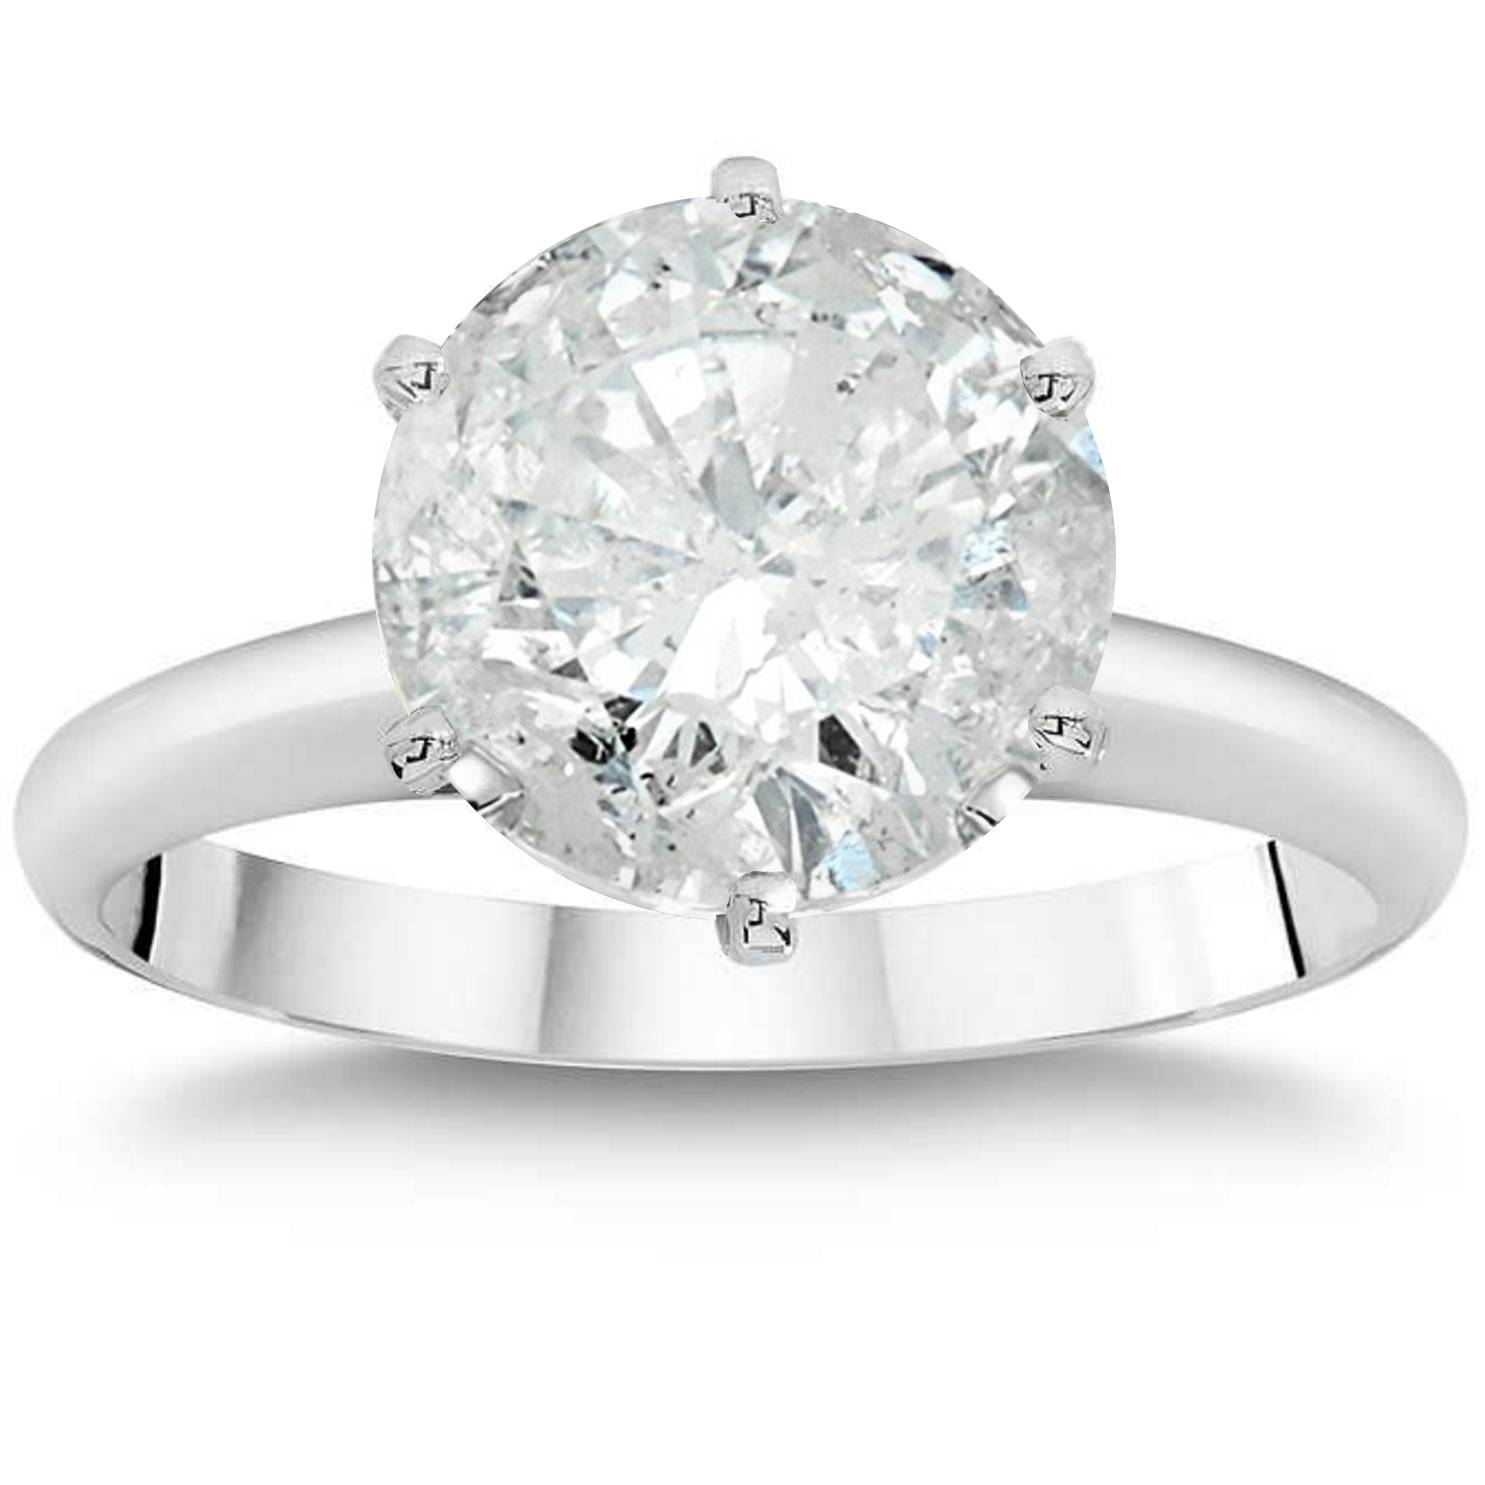 Pompeii3: 3ct Round Brilliant Diamond Solitaire Engagement Ring 14k White Gold Enhanced | Rakuten Inside Round Brilliant Diamond Engagement Rings (View 18 of 25)